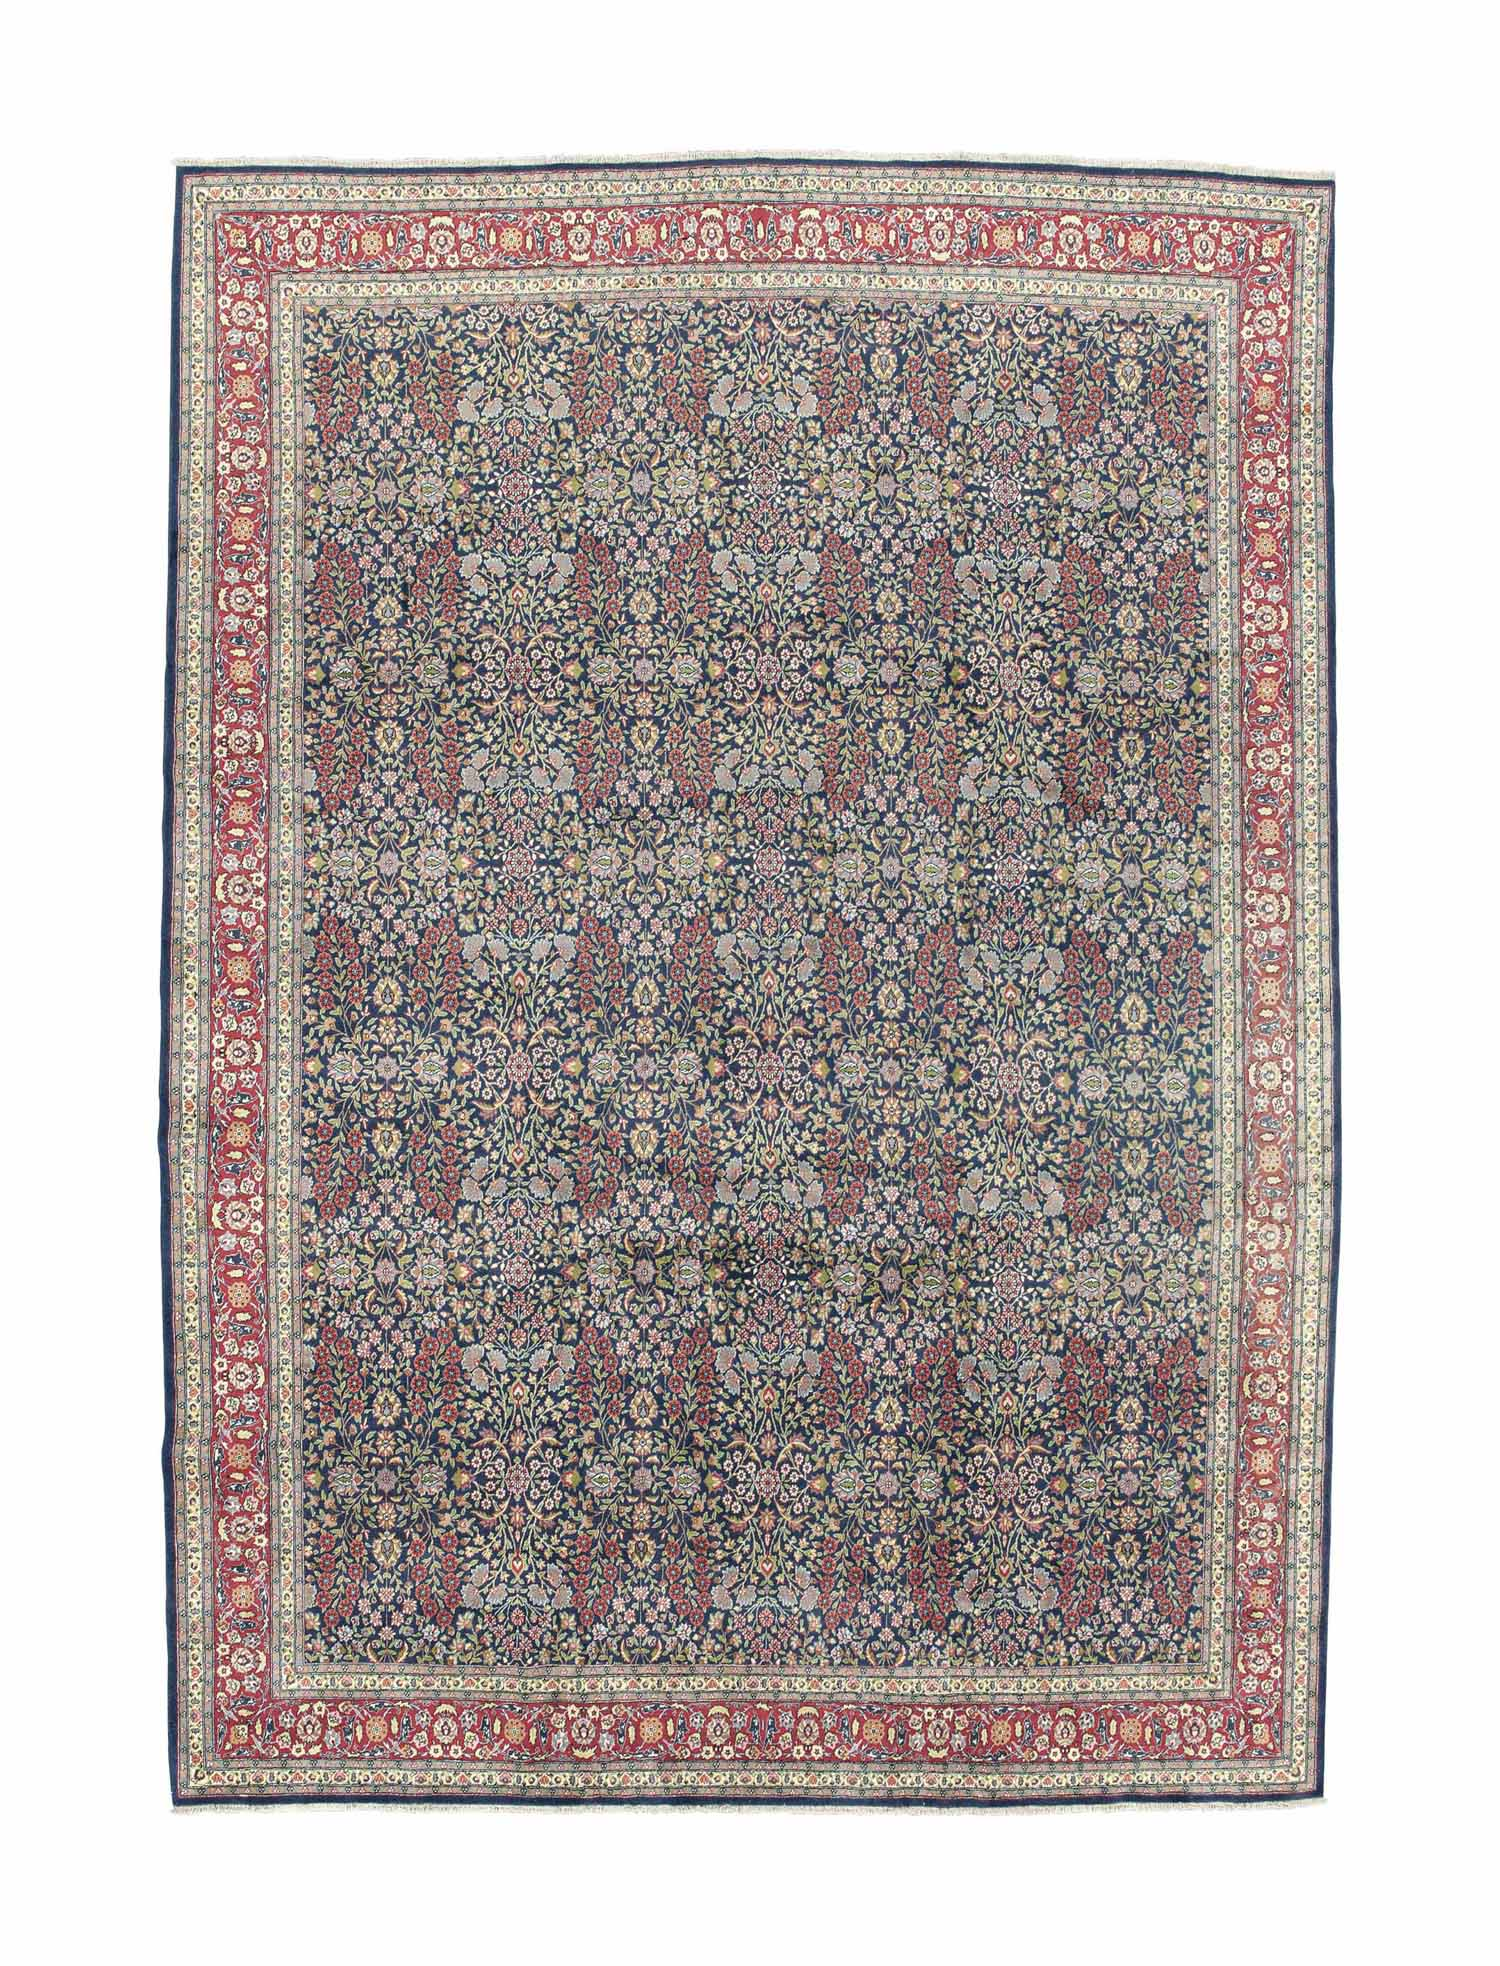 A very fine Hereke carpet